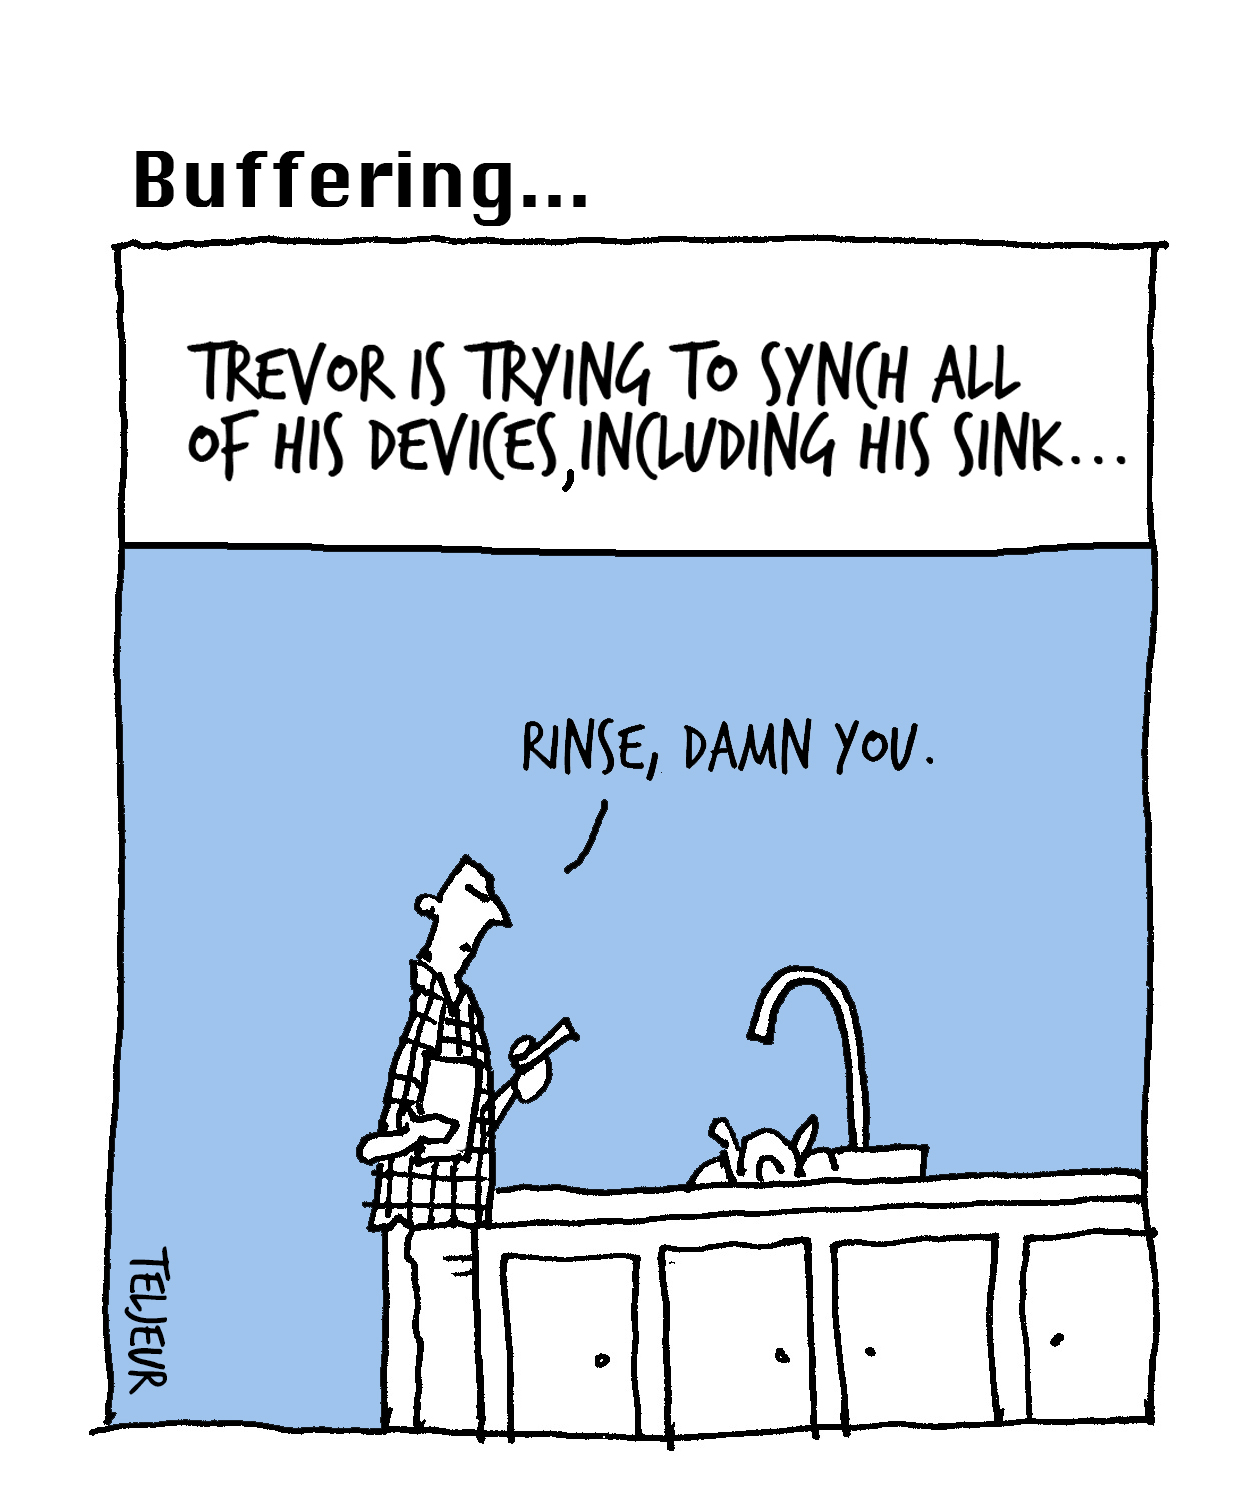 Buffering - sync the sink